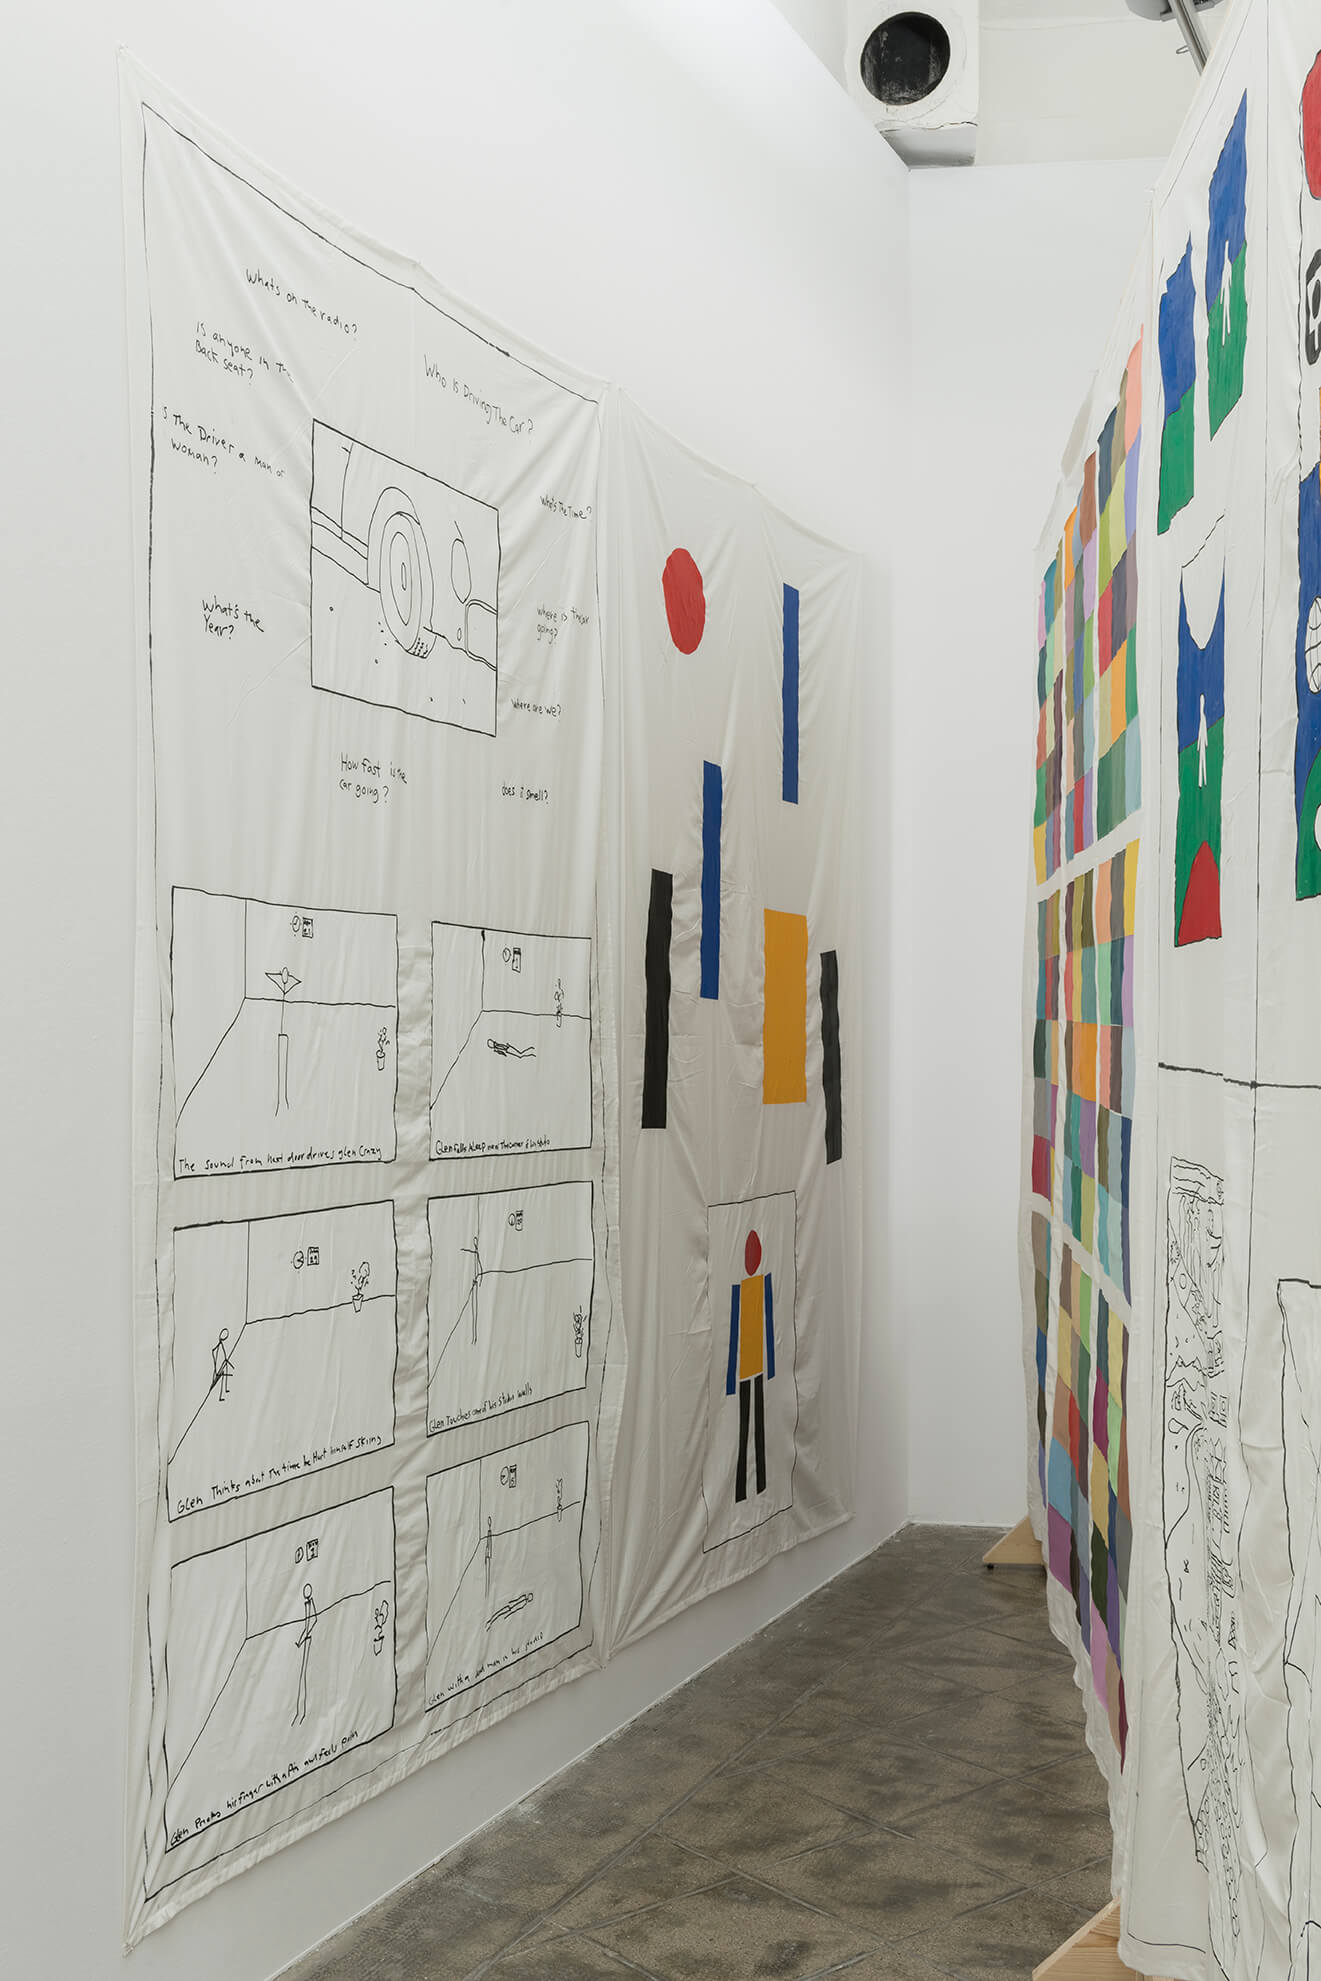 Installation view: Representing The Work, ProjecteSD | Representing The Work | ProjecteSD